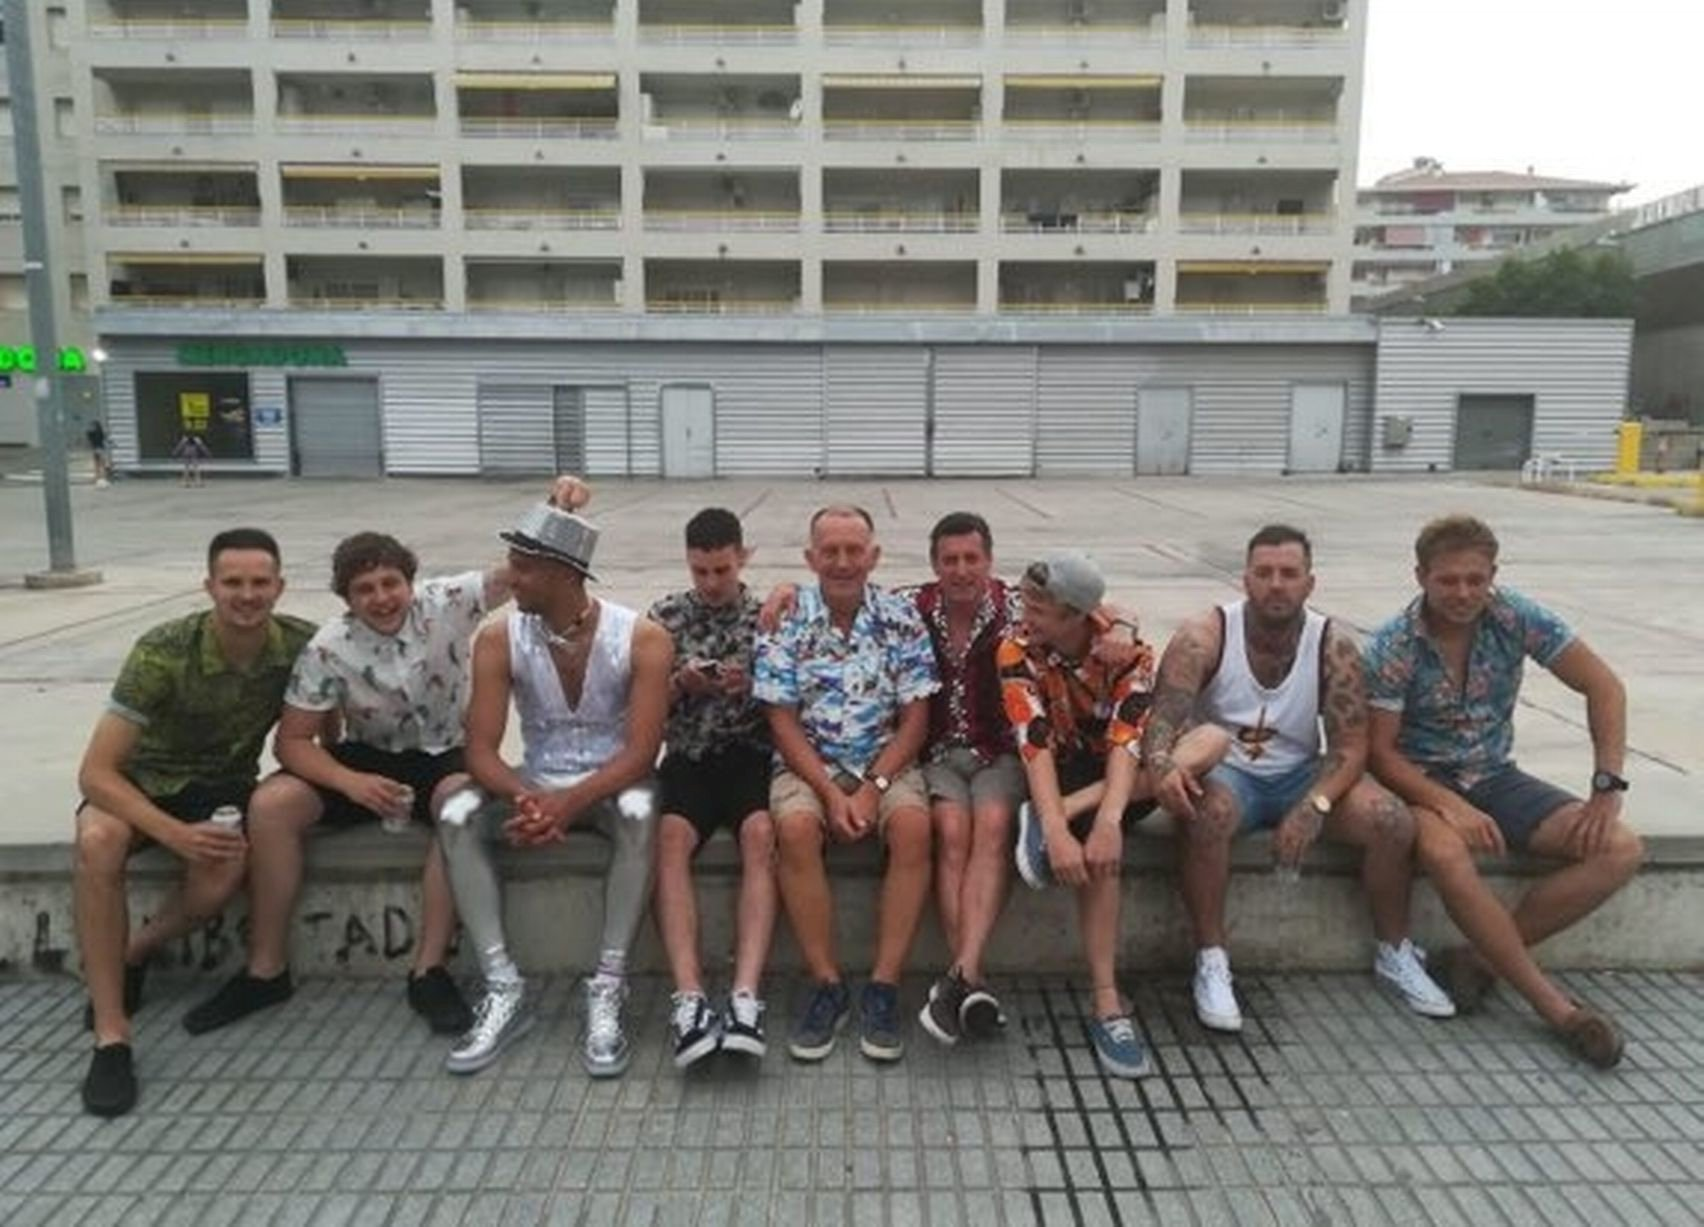 Harry and his friends on their stag do, Harry is second from the left . See SWNS story SWBAG; An easyJet passenger is furious after his bag was badly damaged during a flight - leaving his inside clothes inside ripped and torn. Harry Drew, 26, only took hand luggage on his trip to Barcelona but was told his bag would have to go in the hold for the return flight. But when it come around carousel at Bristol Airport he could immediately see the bag was ripped. And when he looked inside he found number items of clothing ruined - including a sentimental Exeter City football shirt given to him by his late uncle who recently died.